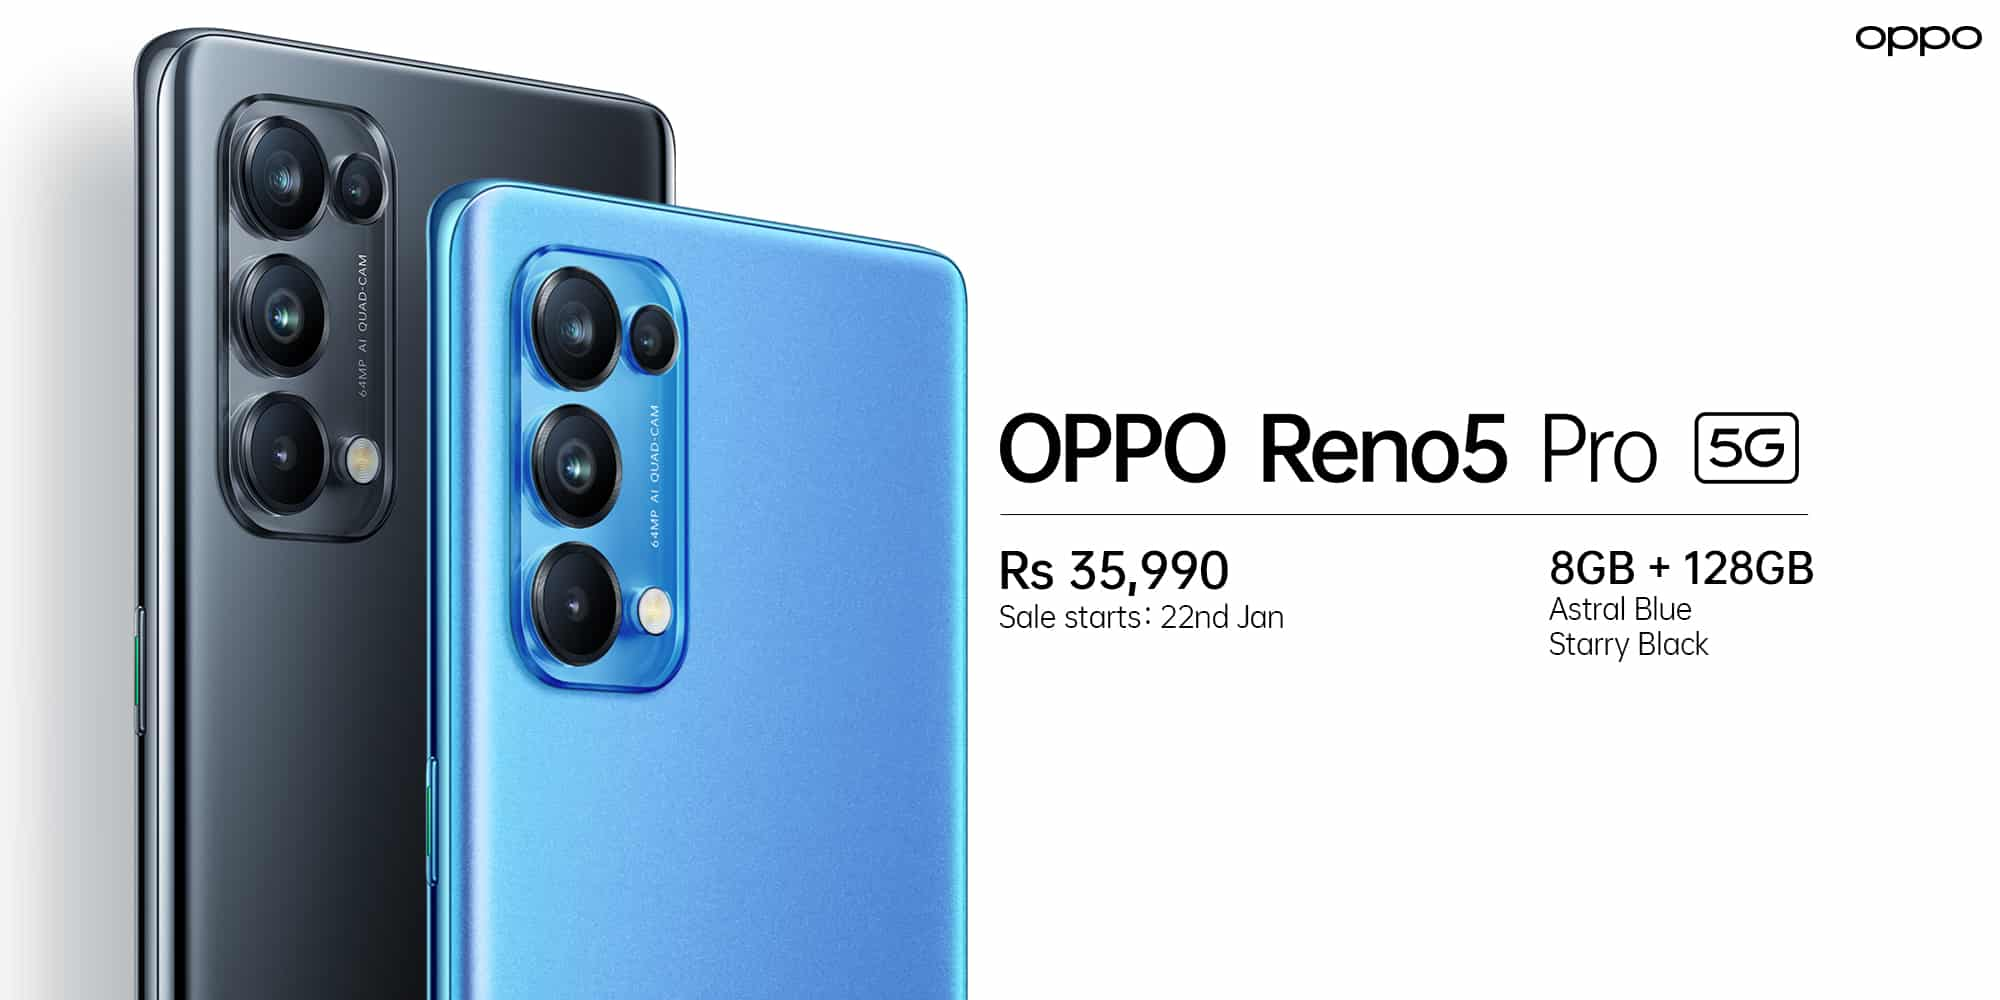 OPPO launches OPPO Reno5 Pro 5G in India